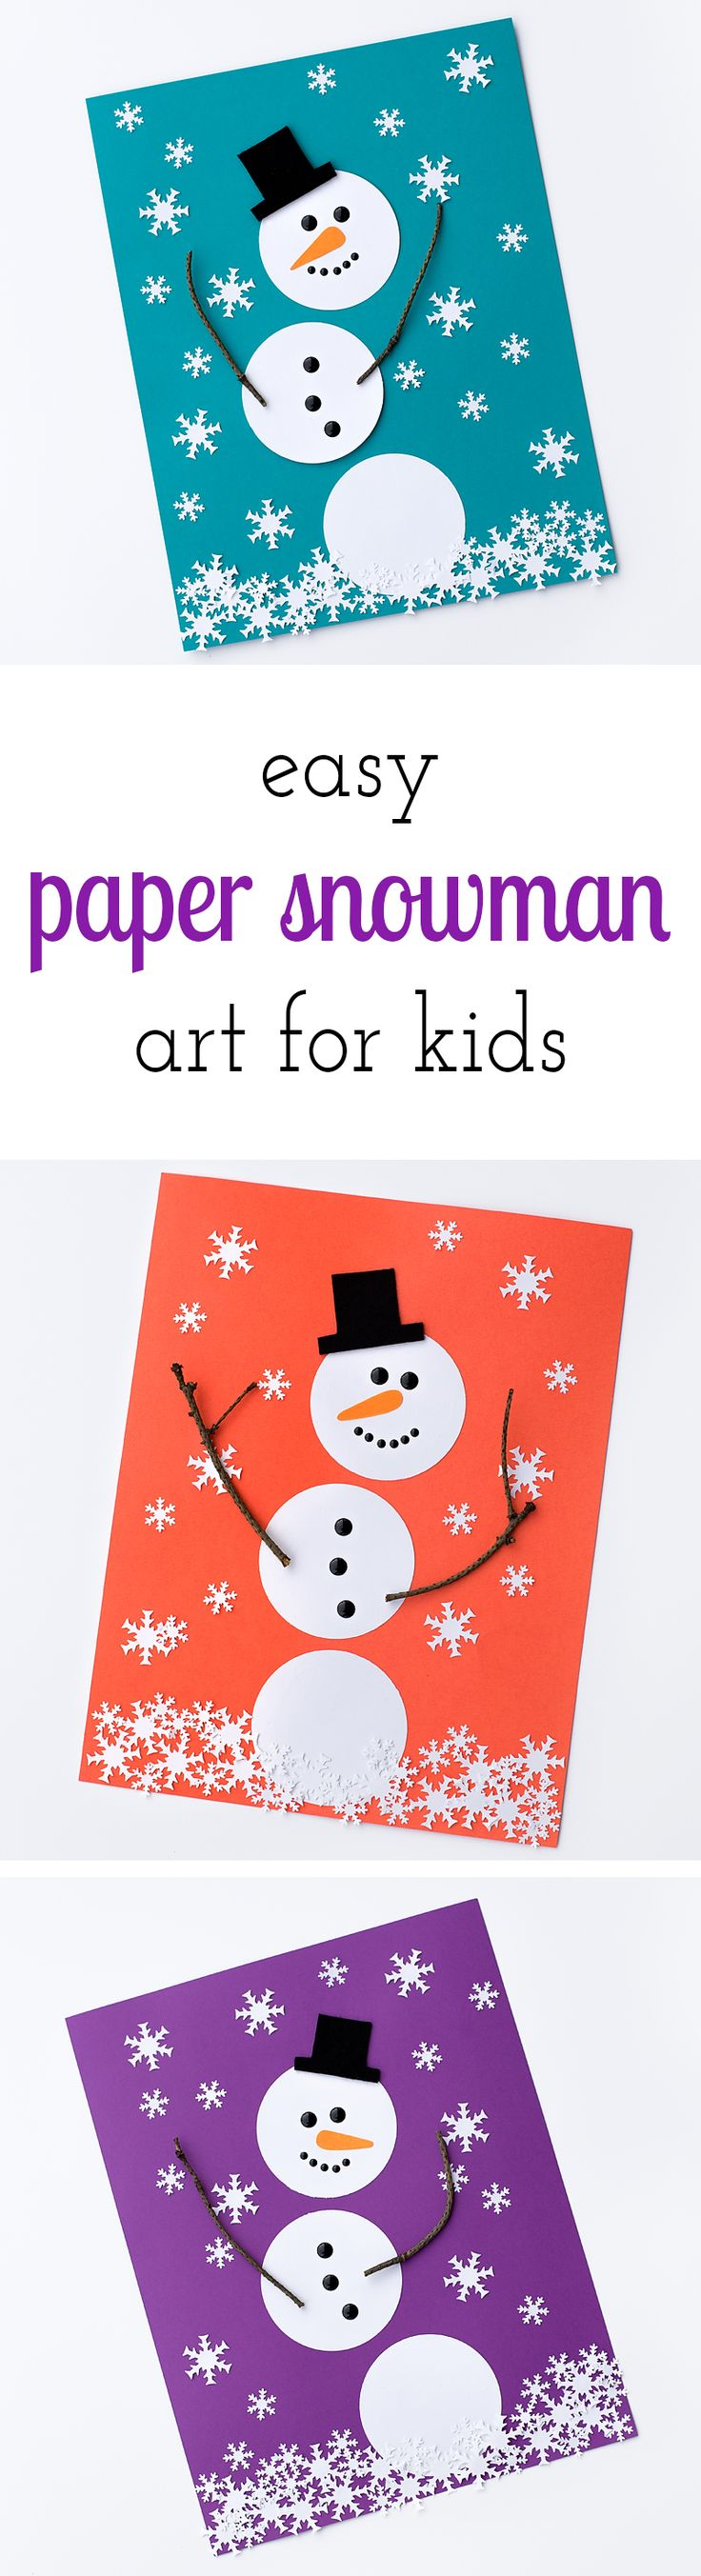 Easy Paper Snowman Art is a simple, fun, and inexpensive winter art activity for kids. Perfect for crafters of all ages!